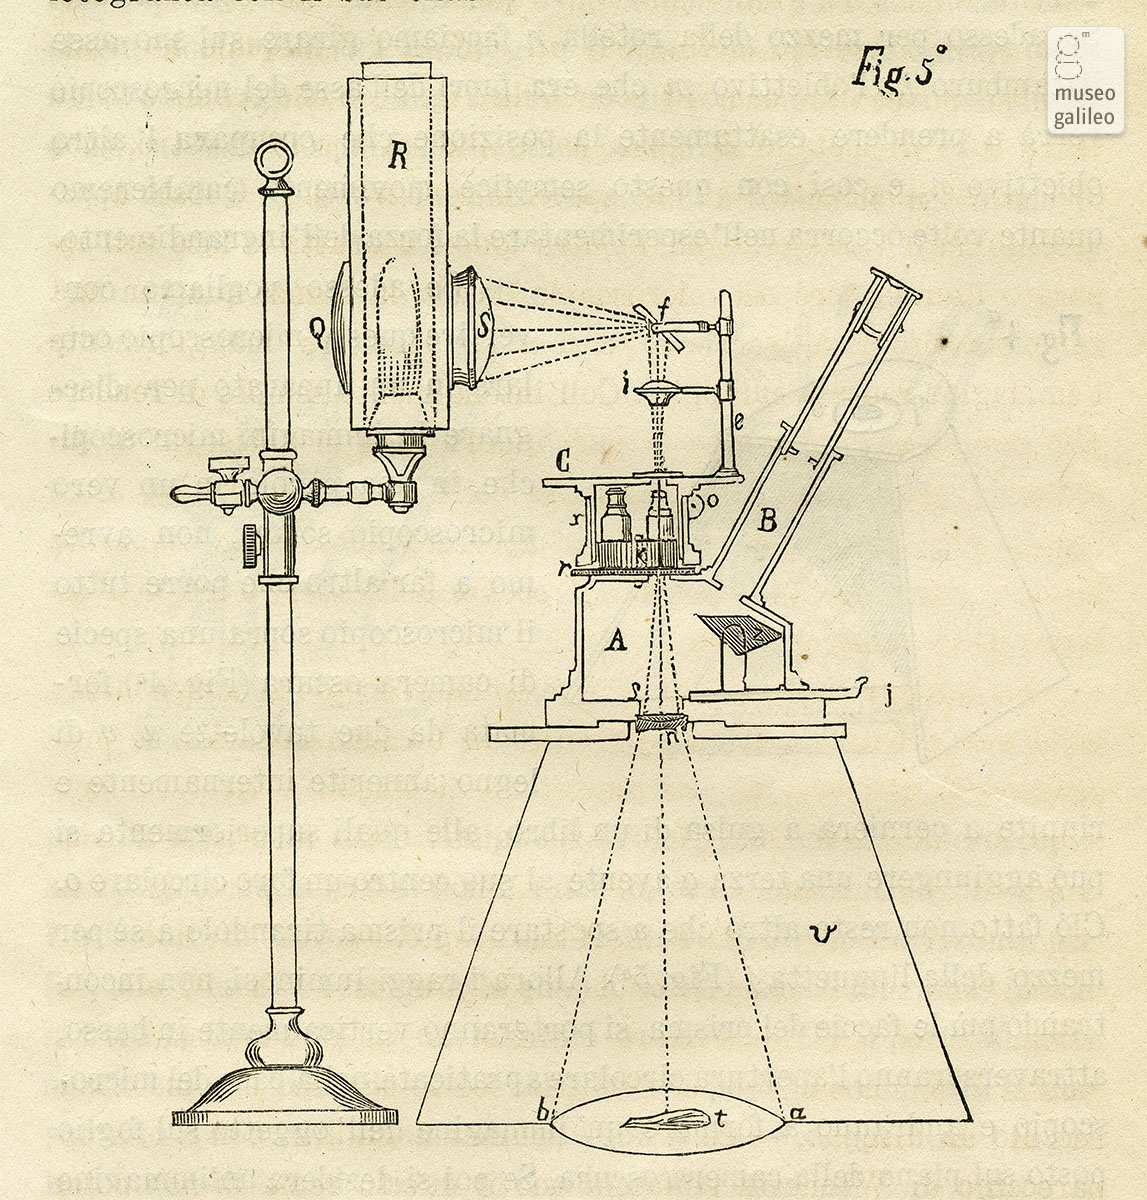 Camera obscura microscope (1869)